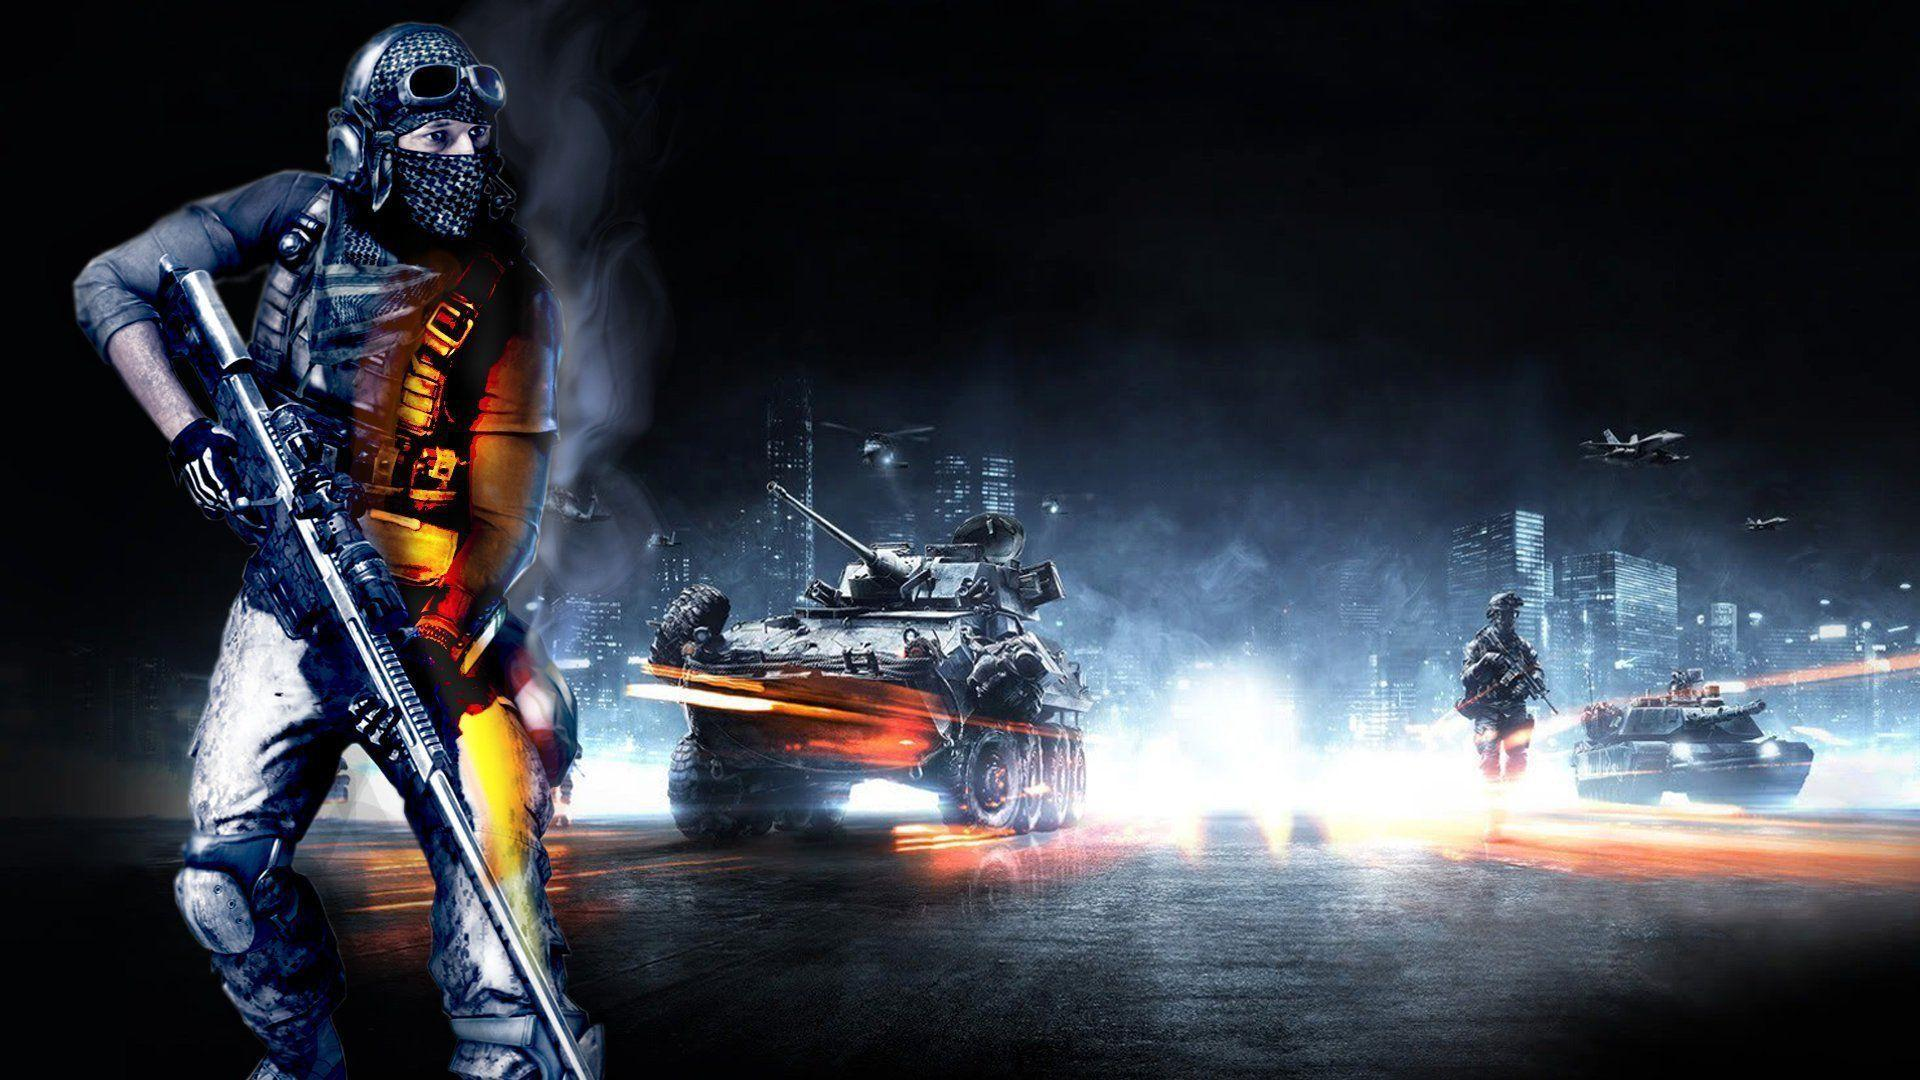 Awesome Wallpapers Girl Sniper Battlefield 3 Wallpapers 1080p Wallpaper Cave